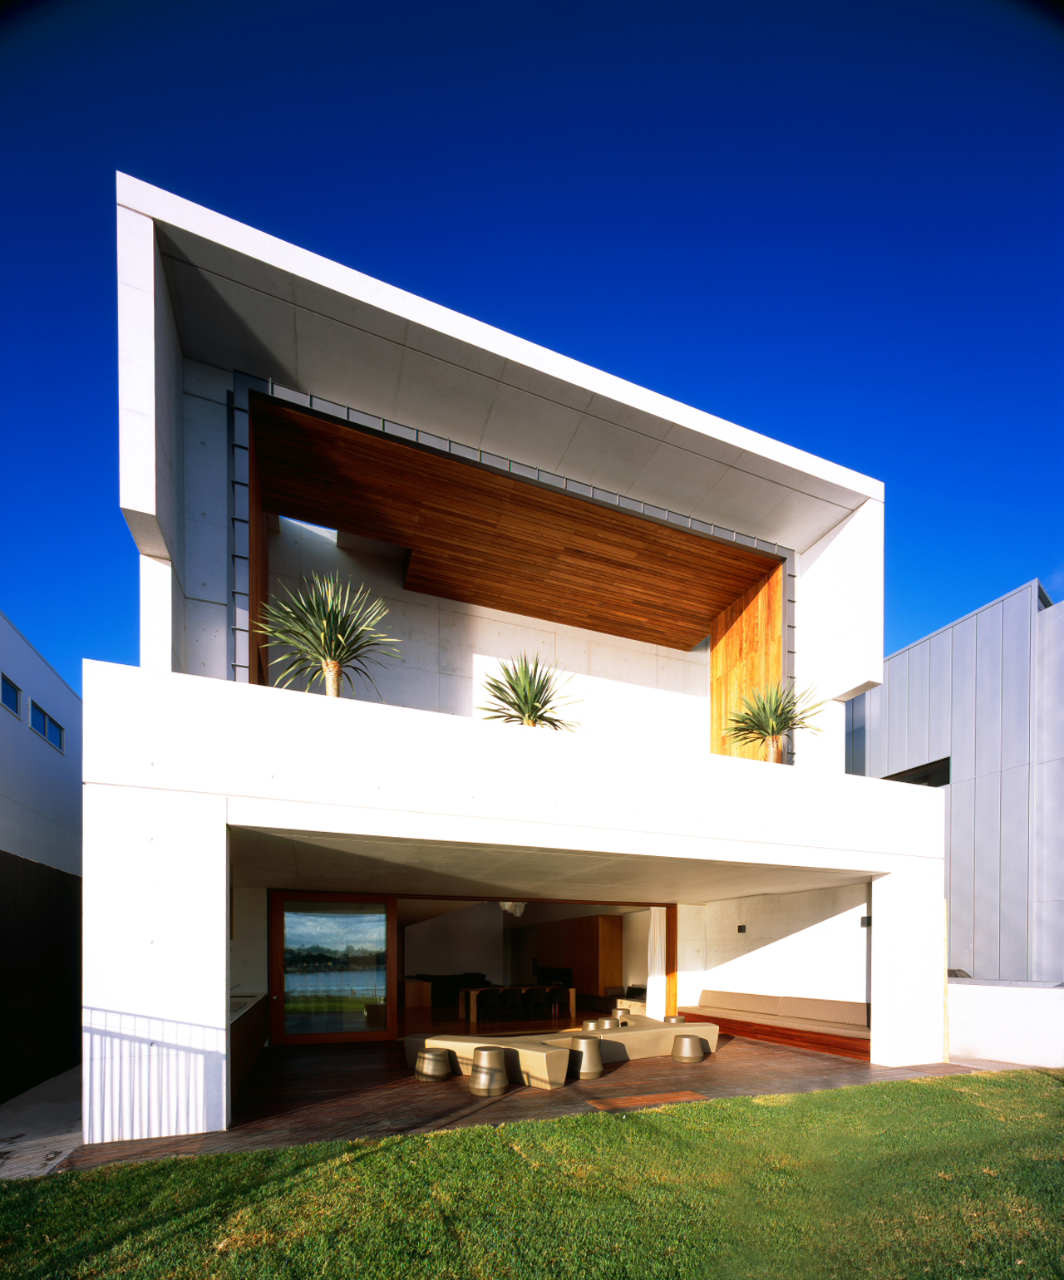 Brisbane | Tag | ArchDaily, page 3